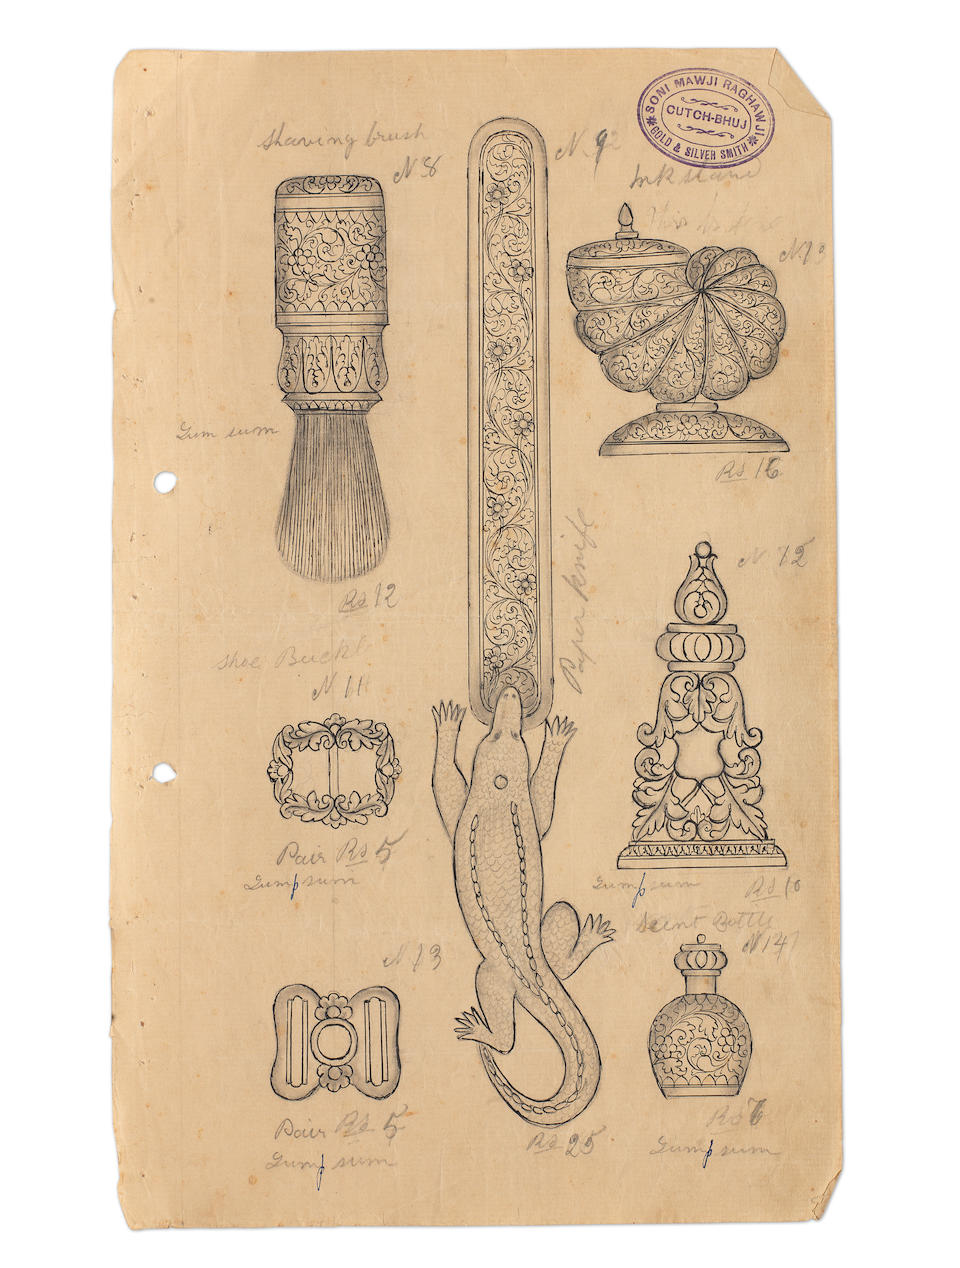 A group of designs and sketches by the workshop of Raghavji Mawji Bhuj, late 19th Century